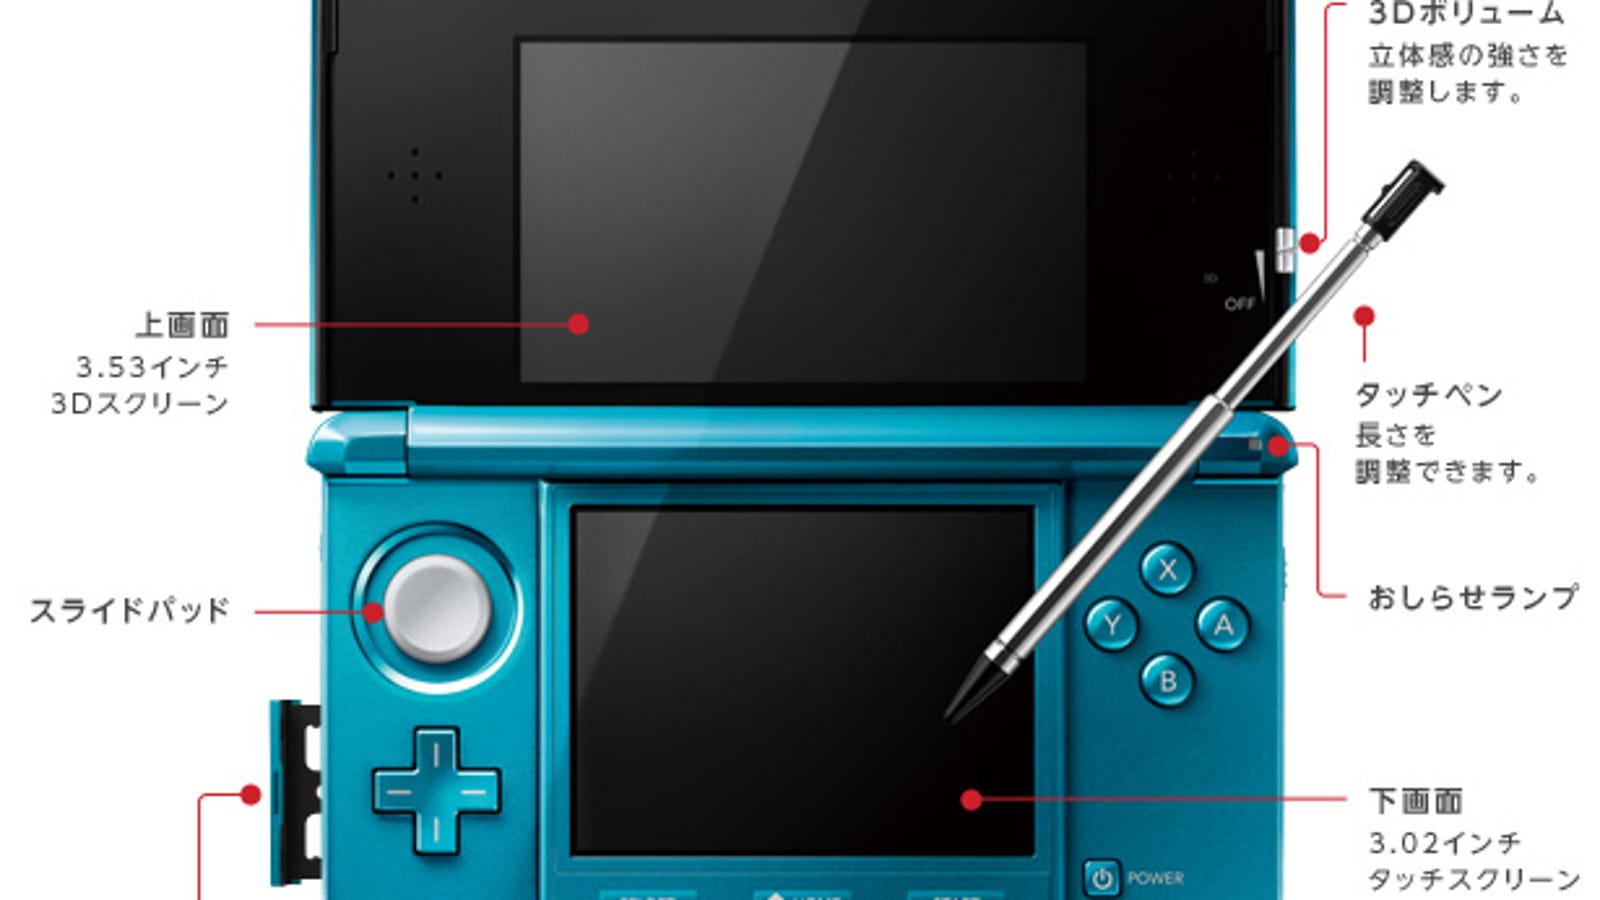 3DS Gets Price, Date, Streaming TV, Games, Details